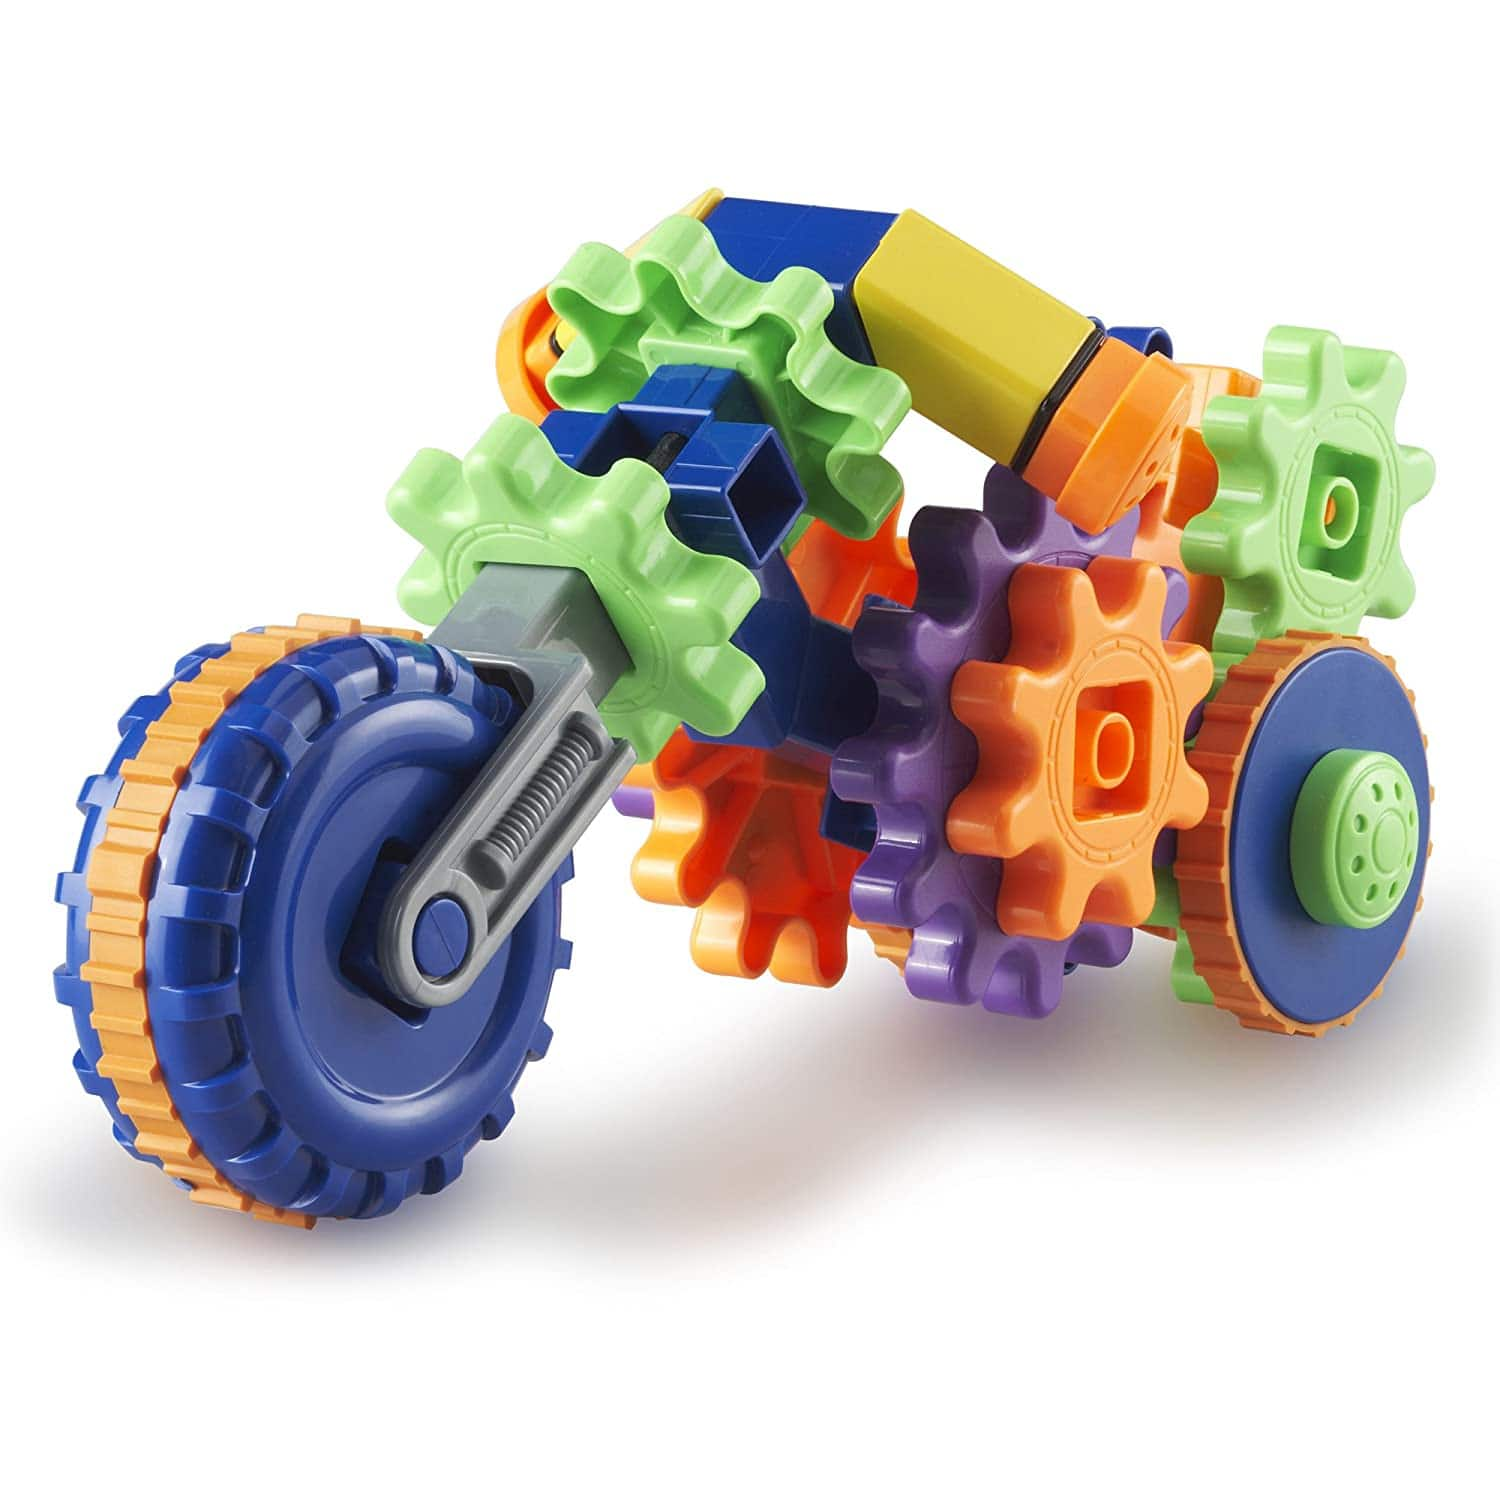 Learning Resources Gears! Gears! Gears! Cycle Gears, Construction, Gear Toy, 30 Pieces for $7.49 @ Amazon